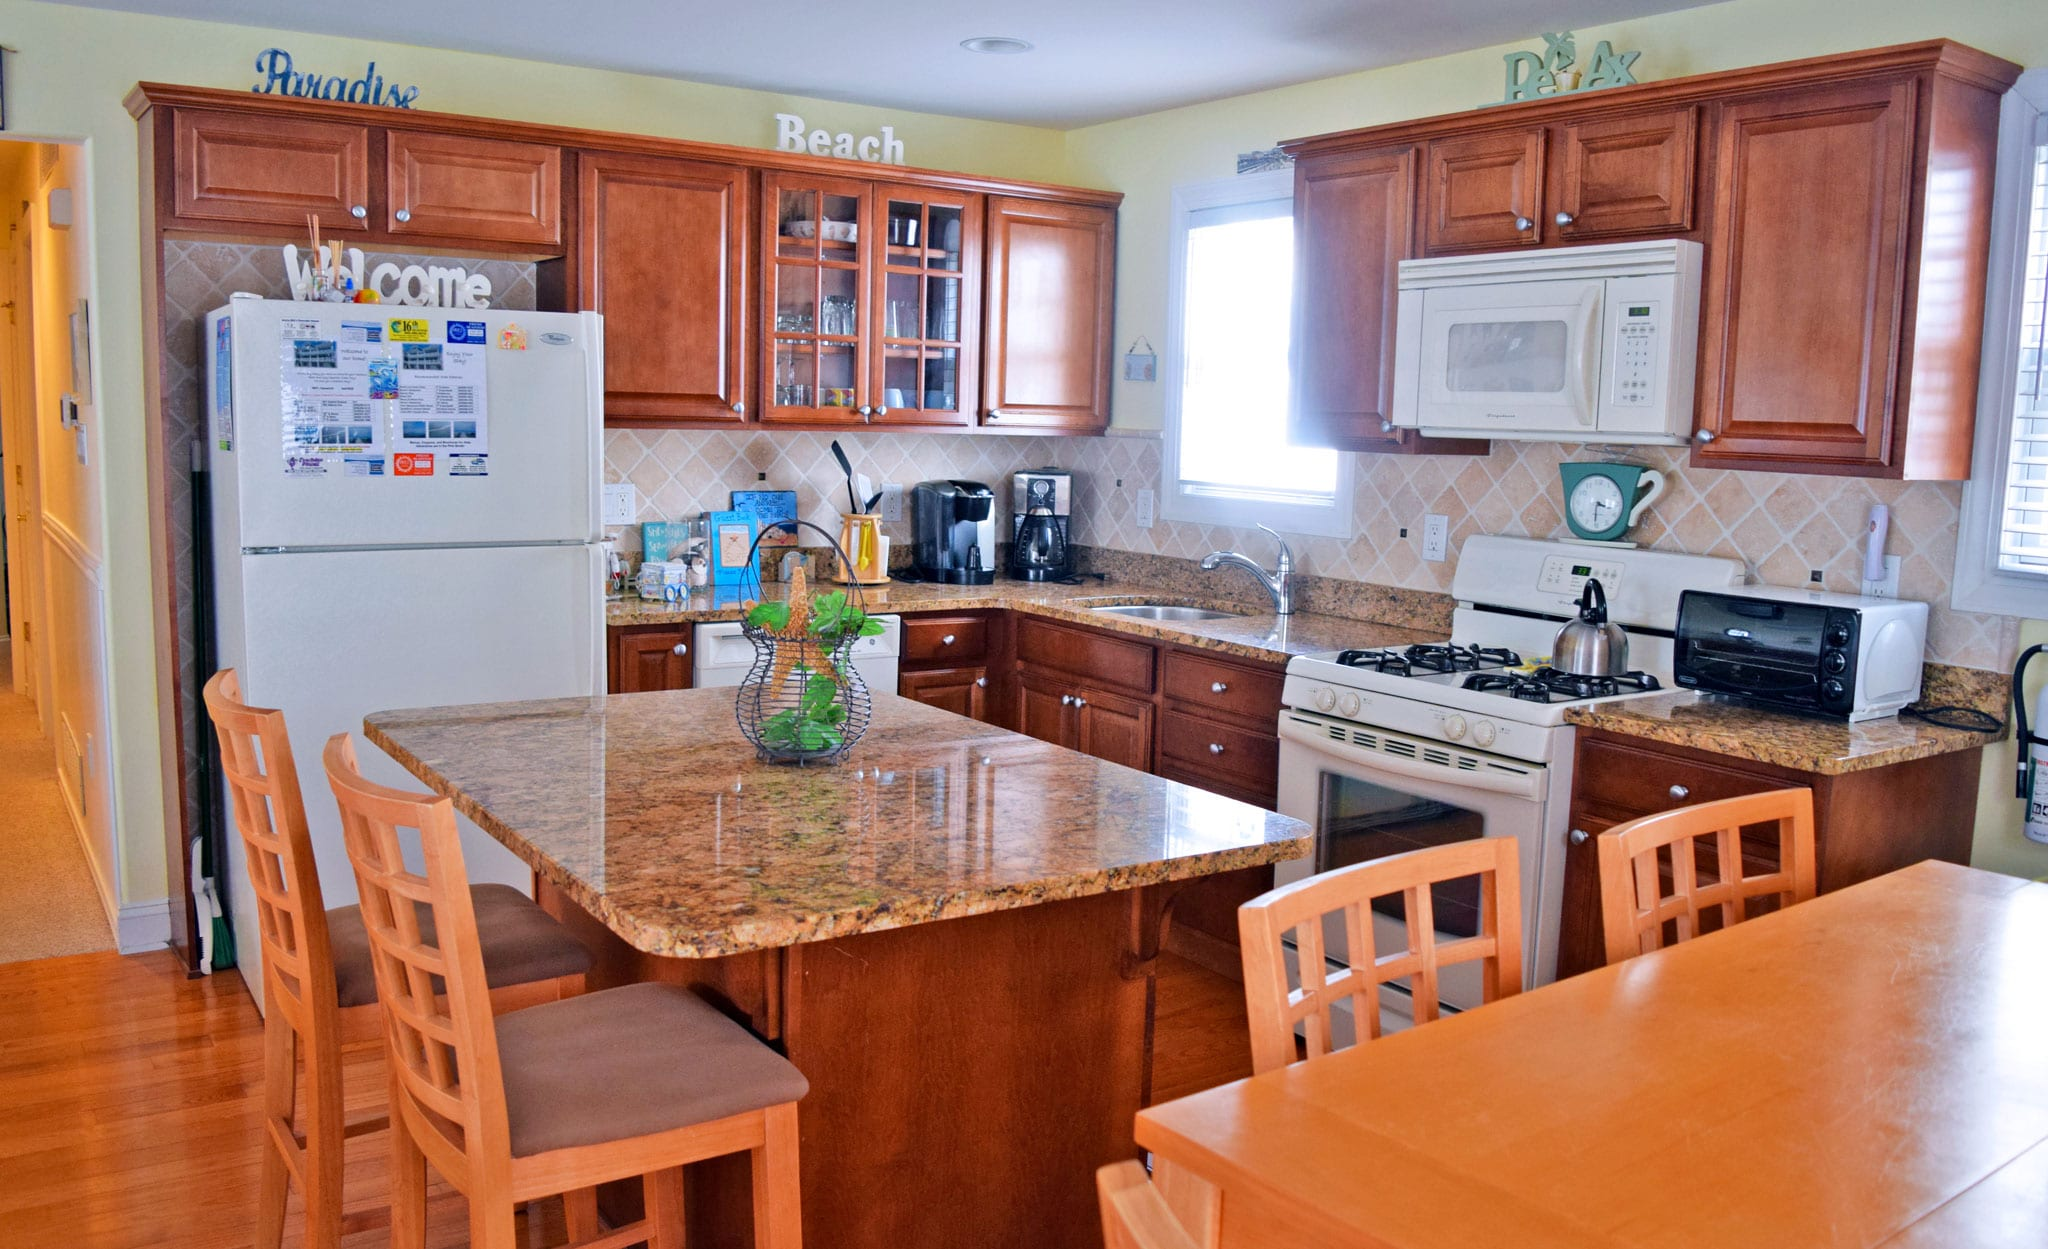 Spacious kitchen features island, granite countertops, and full kitchenware and appliances - Ocean City, New Jersey Family Vacation Rental